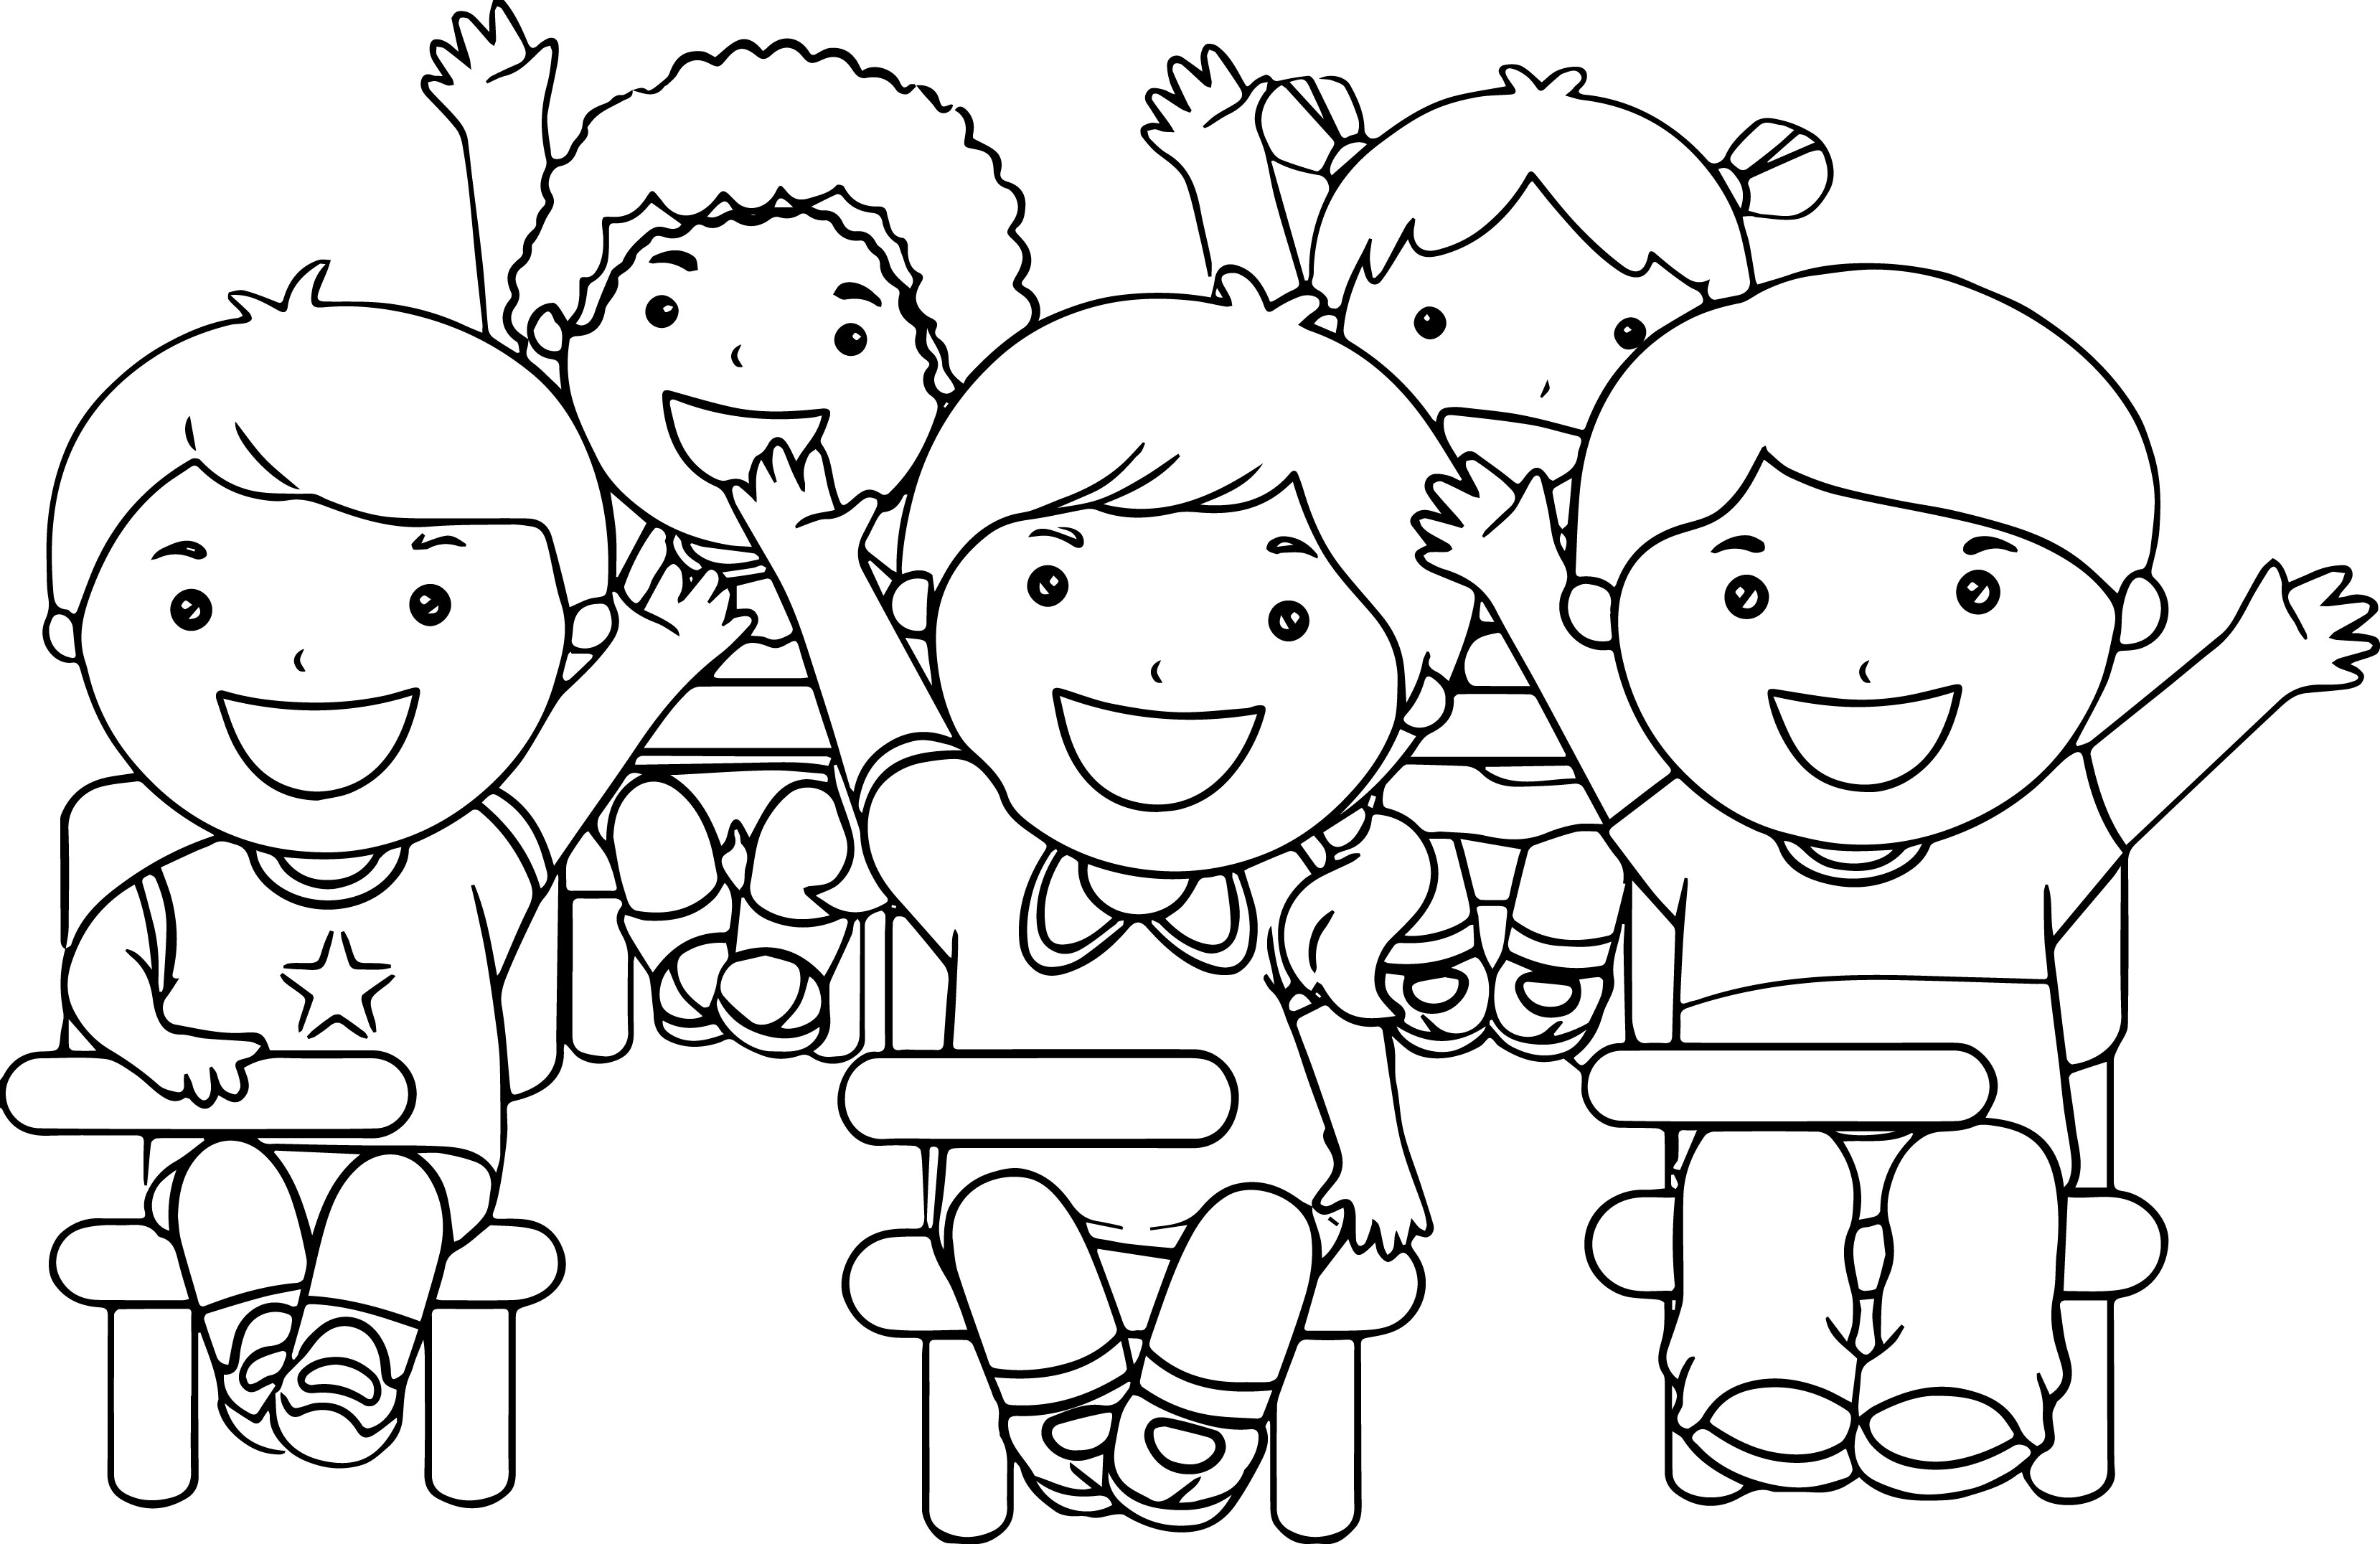 b coloring pages for kids - photo #47